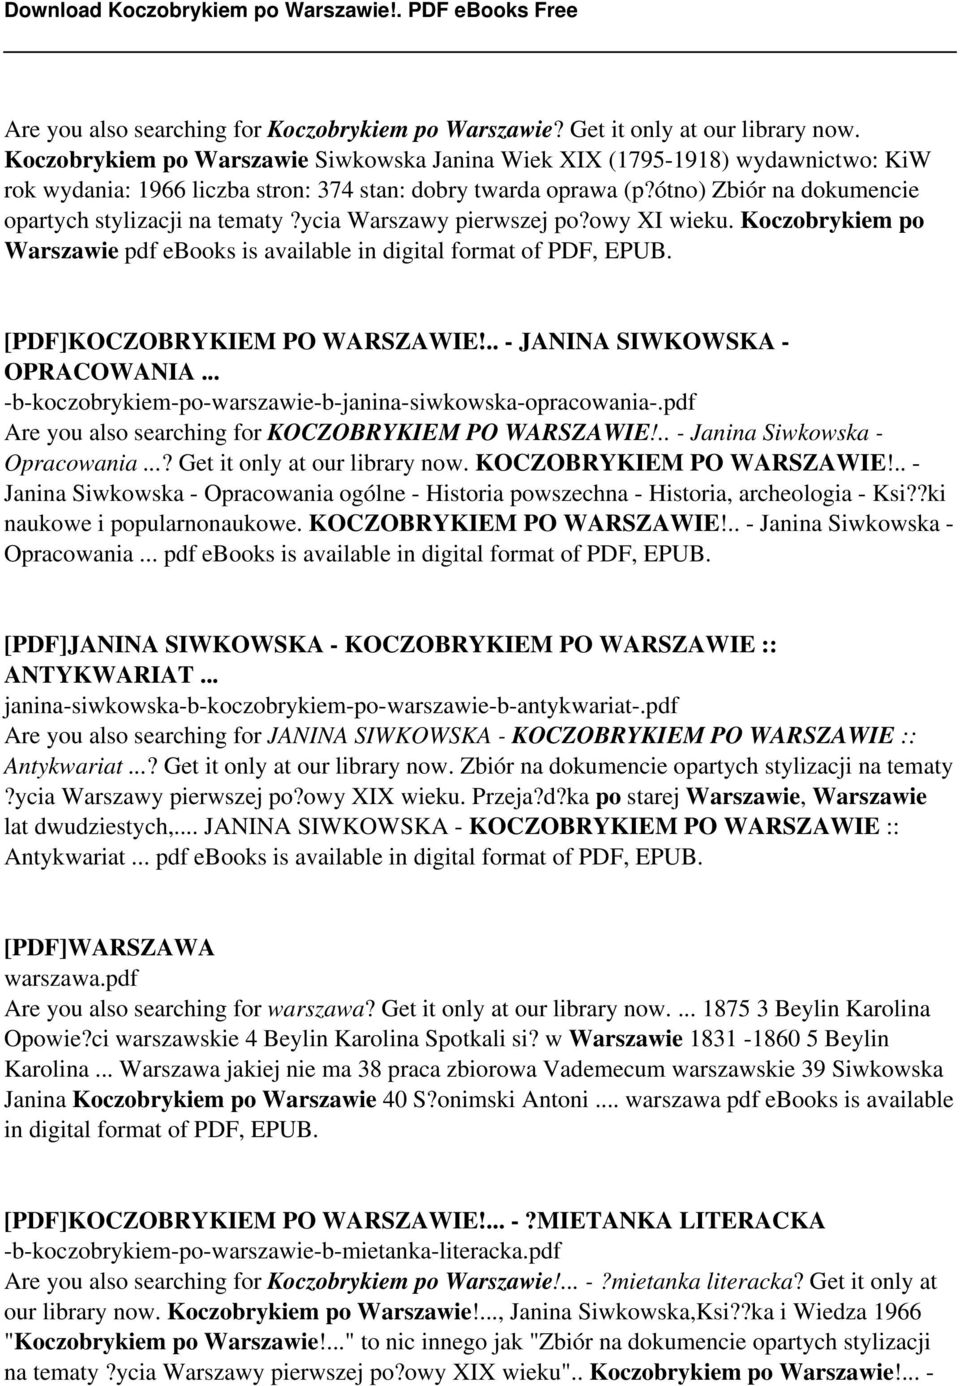 ótno) Zbiór na dokumencie opartych stylizacji na tematy?ycia Warszawy pierwszej po?owy XI wieku. Koczobrykiem po Warszawie pdf ebooks is available in digital format of PDF, EPUB.